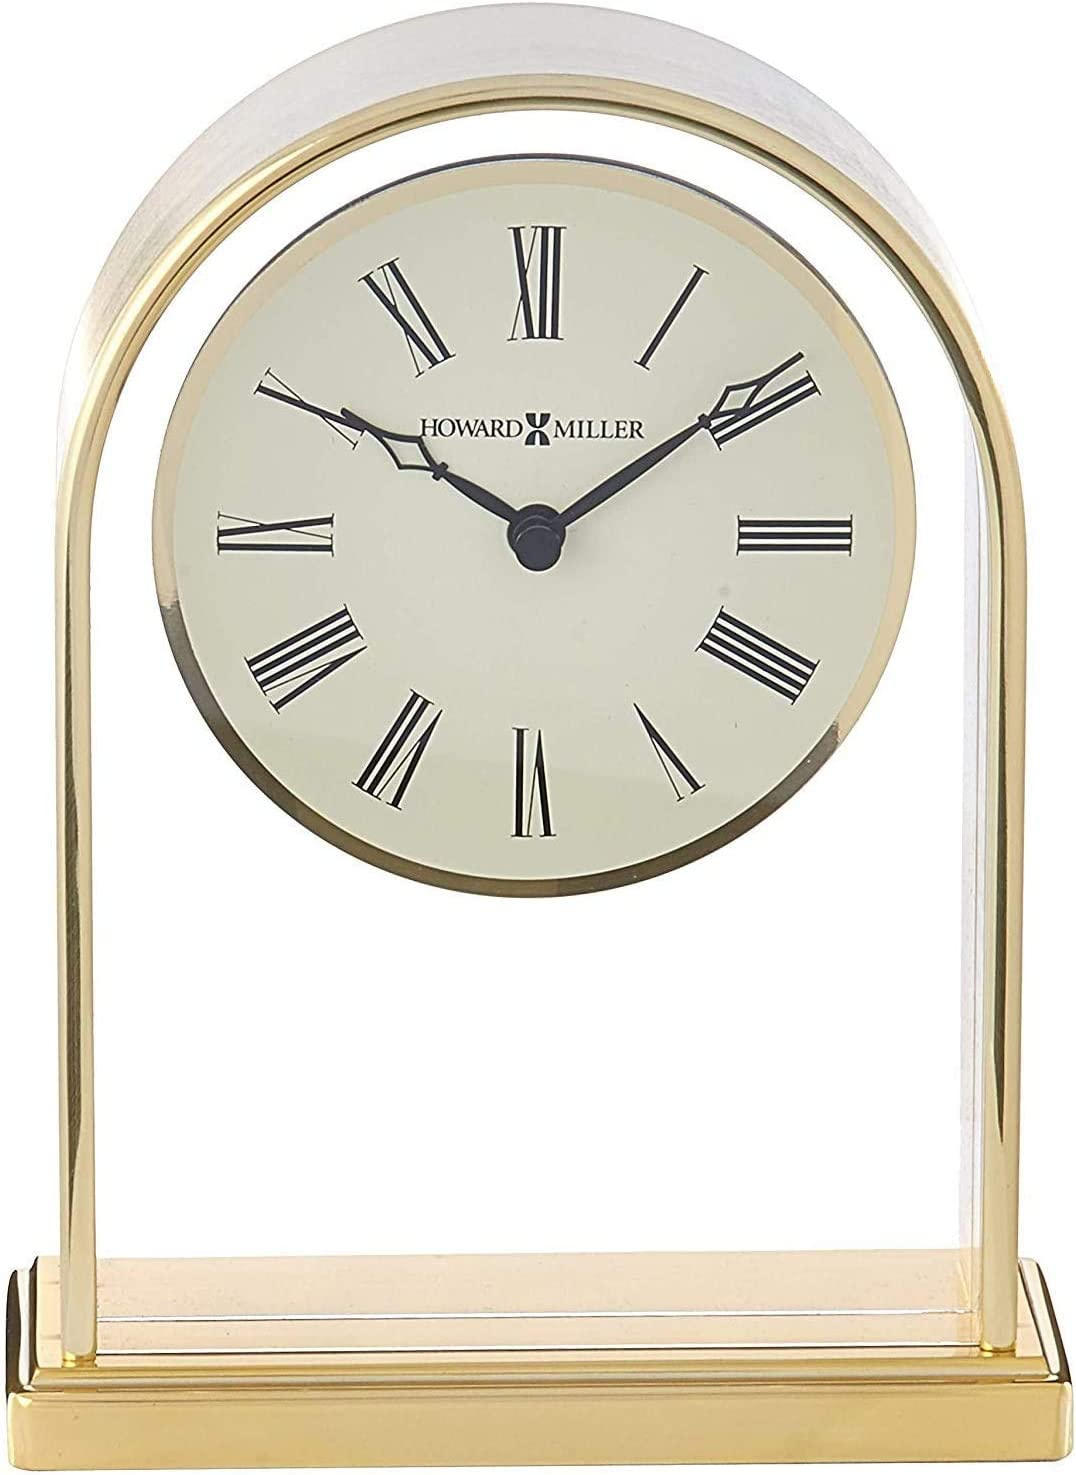 Howard Miller Reminisce Table Clock 613-118 Brass Finish with Quartz Movement